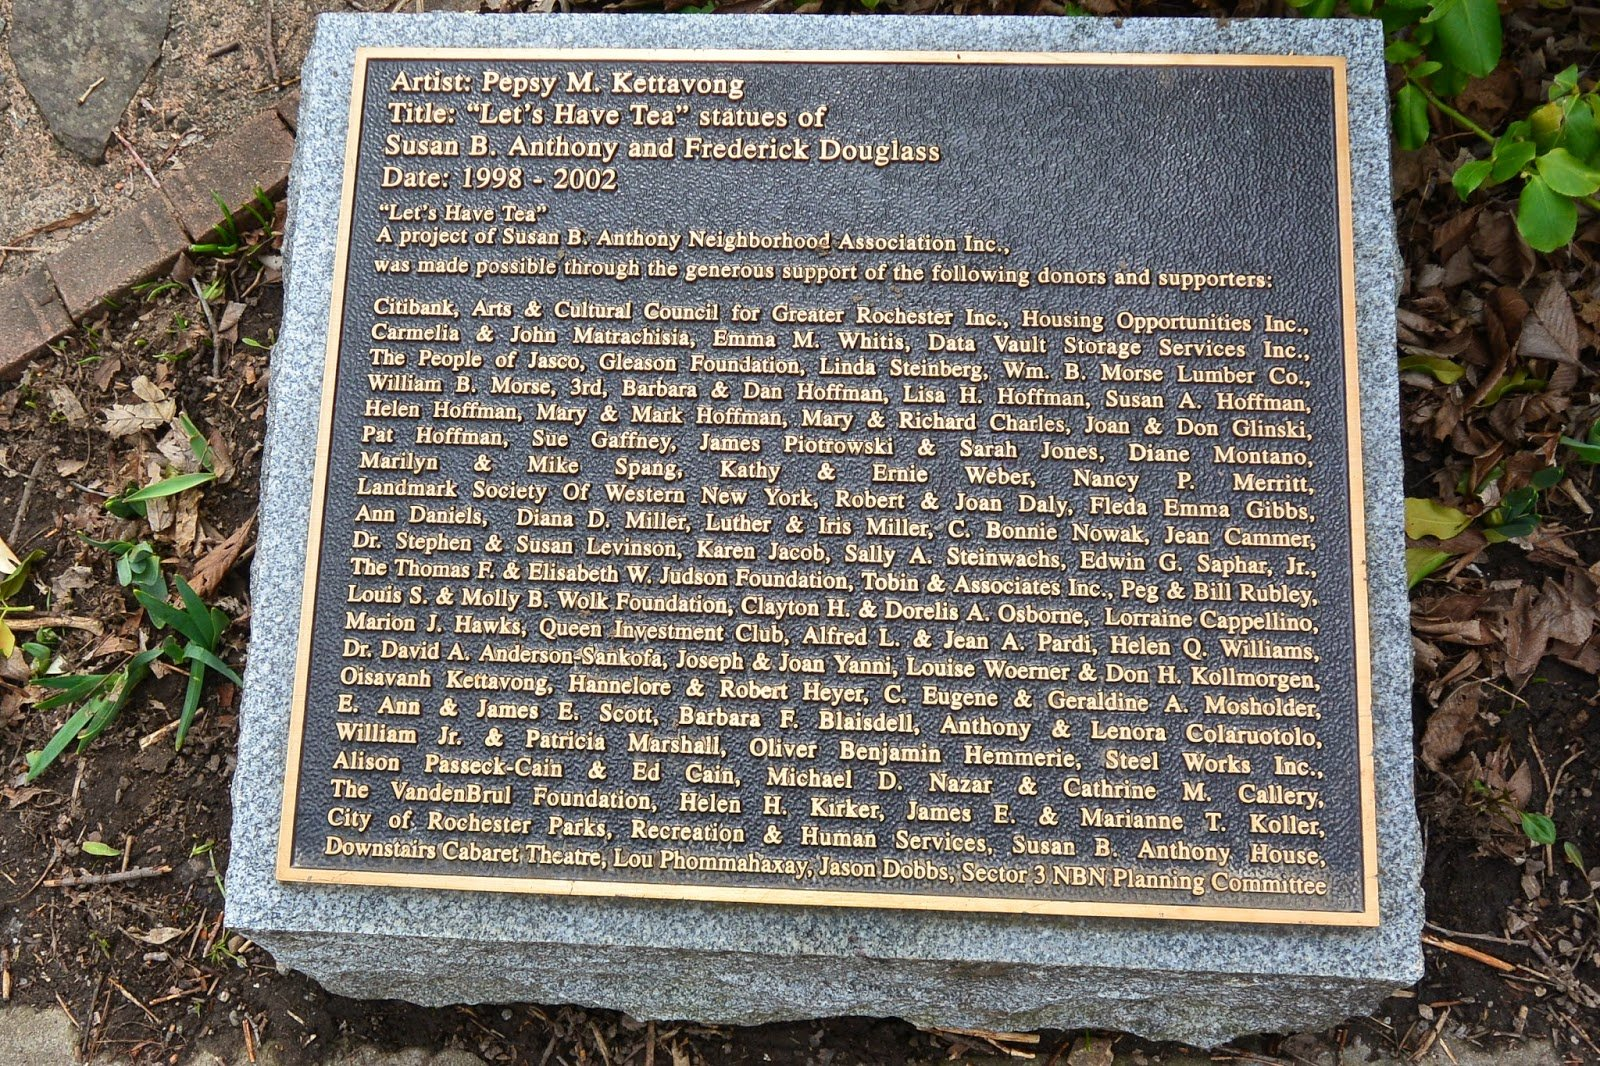 The plaque honoring the people who made the statue possible.  Picture by Tom the Backroads Traveler.